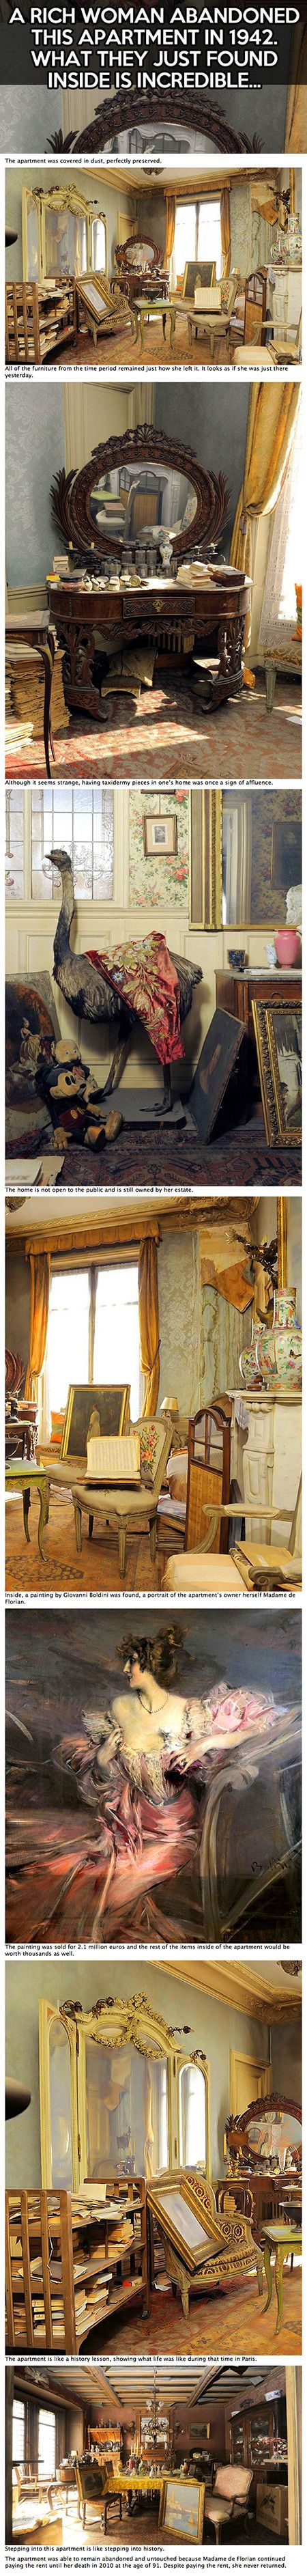 Wealthy Woman Abandons Apartment in 1942, This is What They Found Inside - TechEBlog